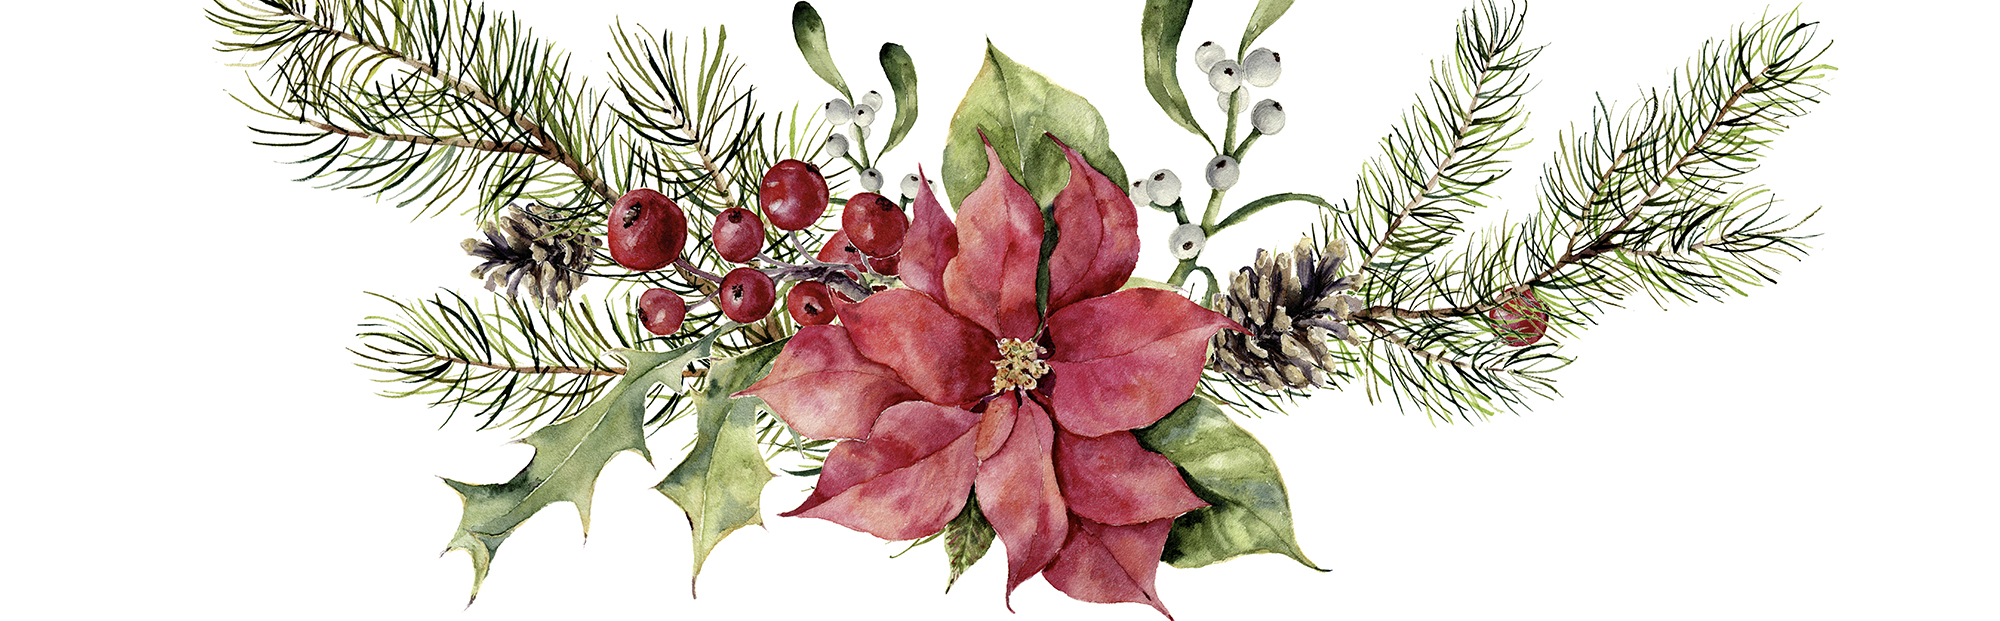 Bring Out the Holly